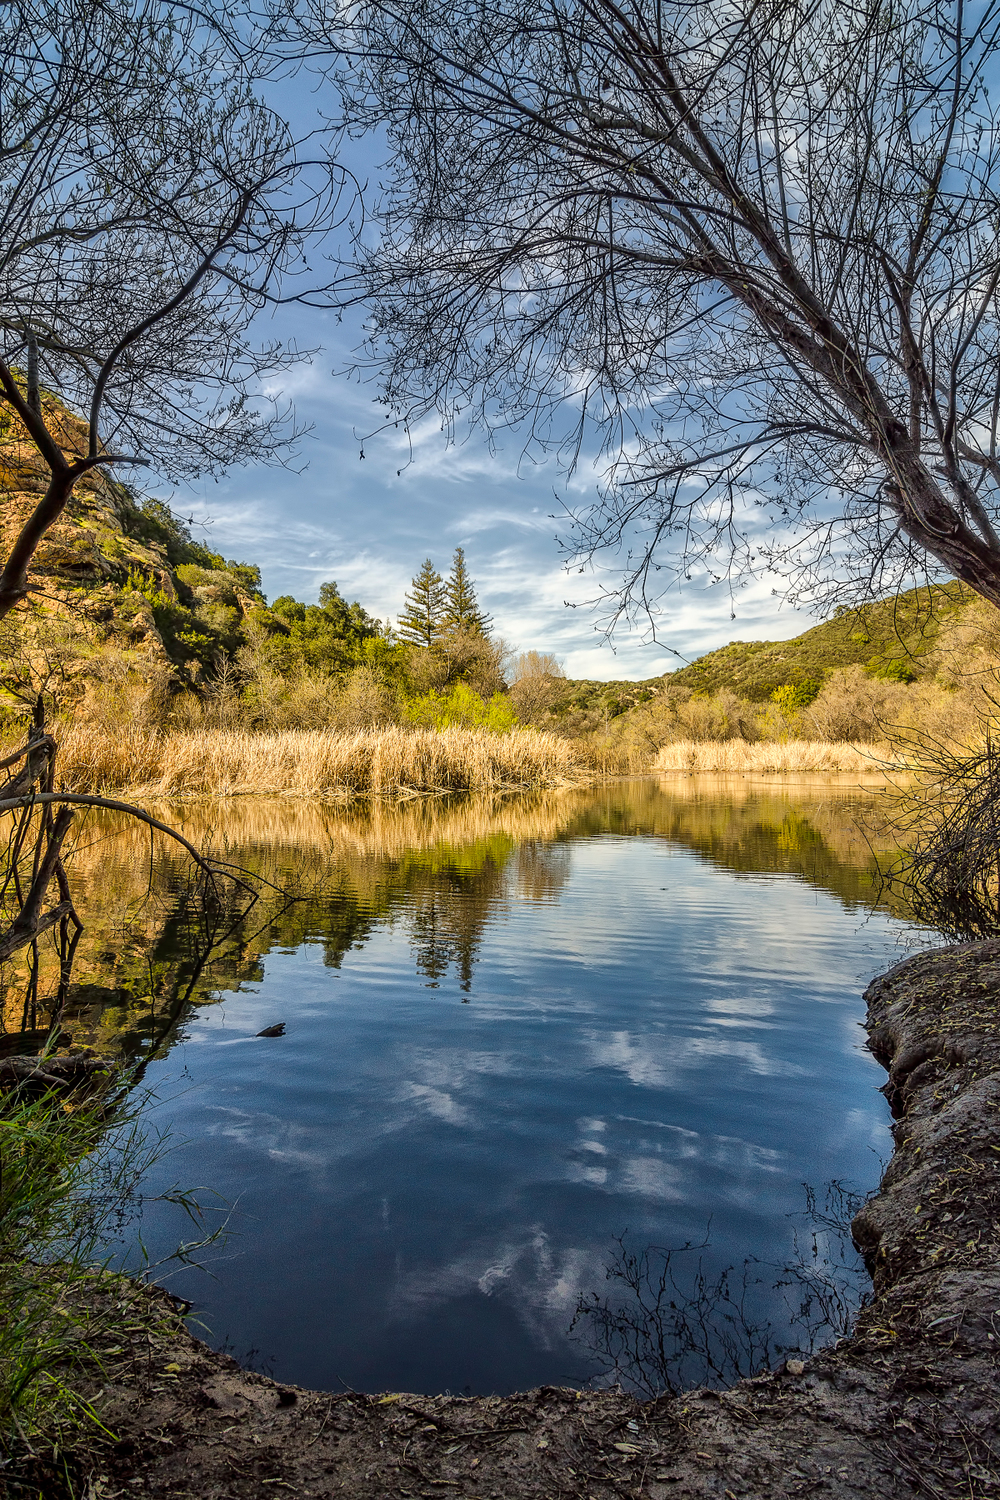 Century Lake, A Portrait. Malibu Creek State Park, California. Wasim Muklashy Photography